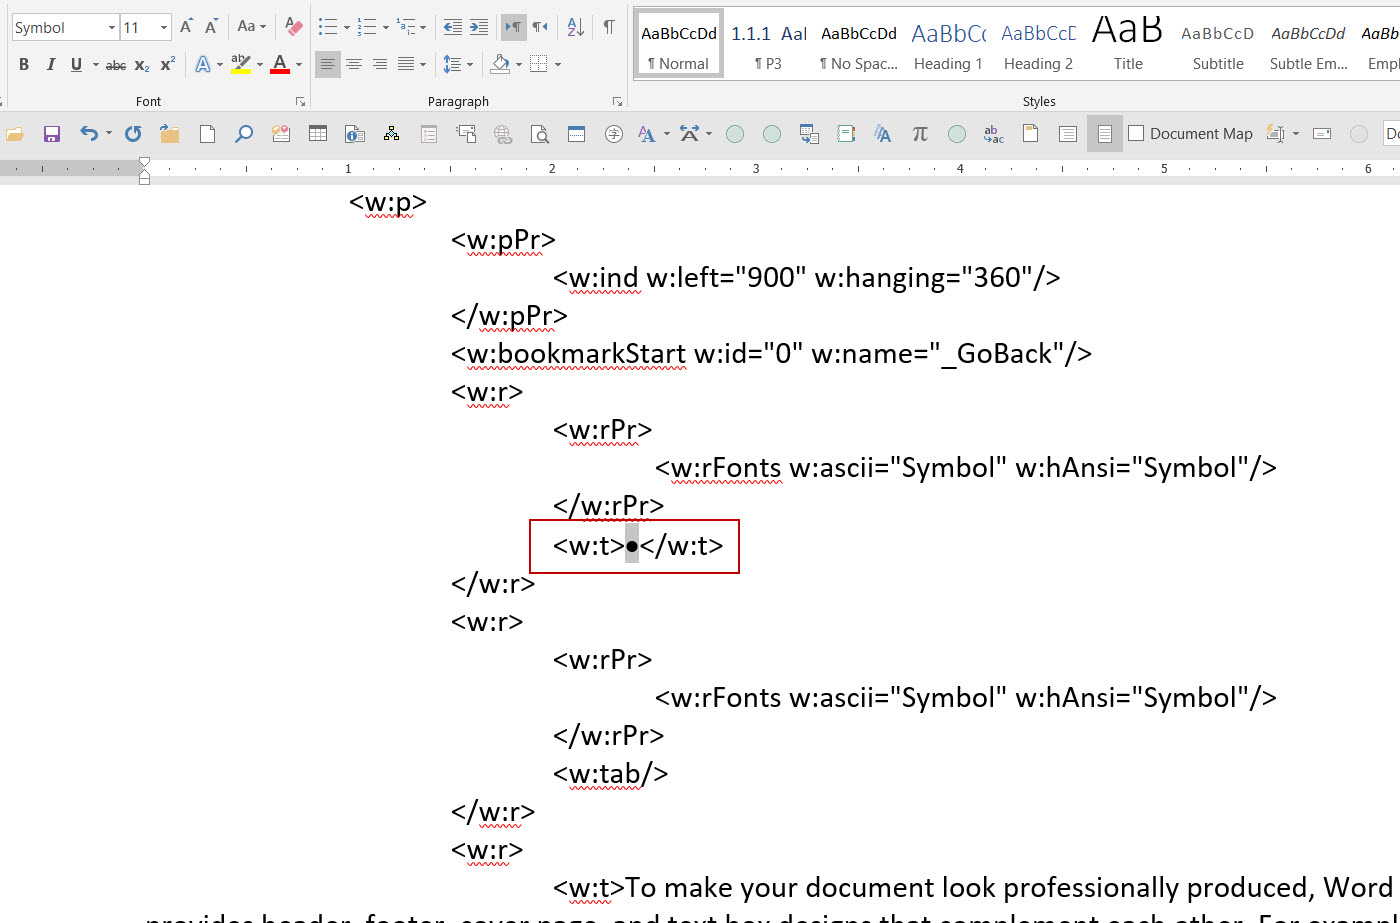 Microsof Word Lists Are Not Converting To Text Correctly In Vba